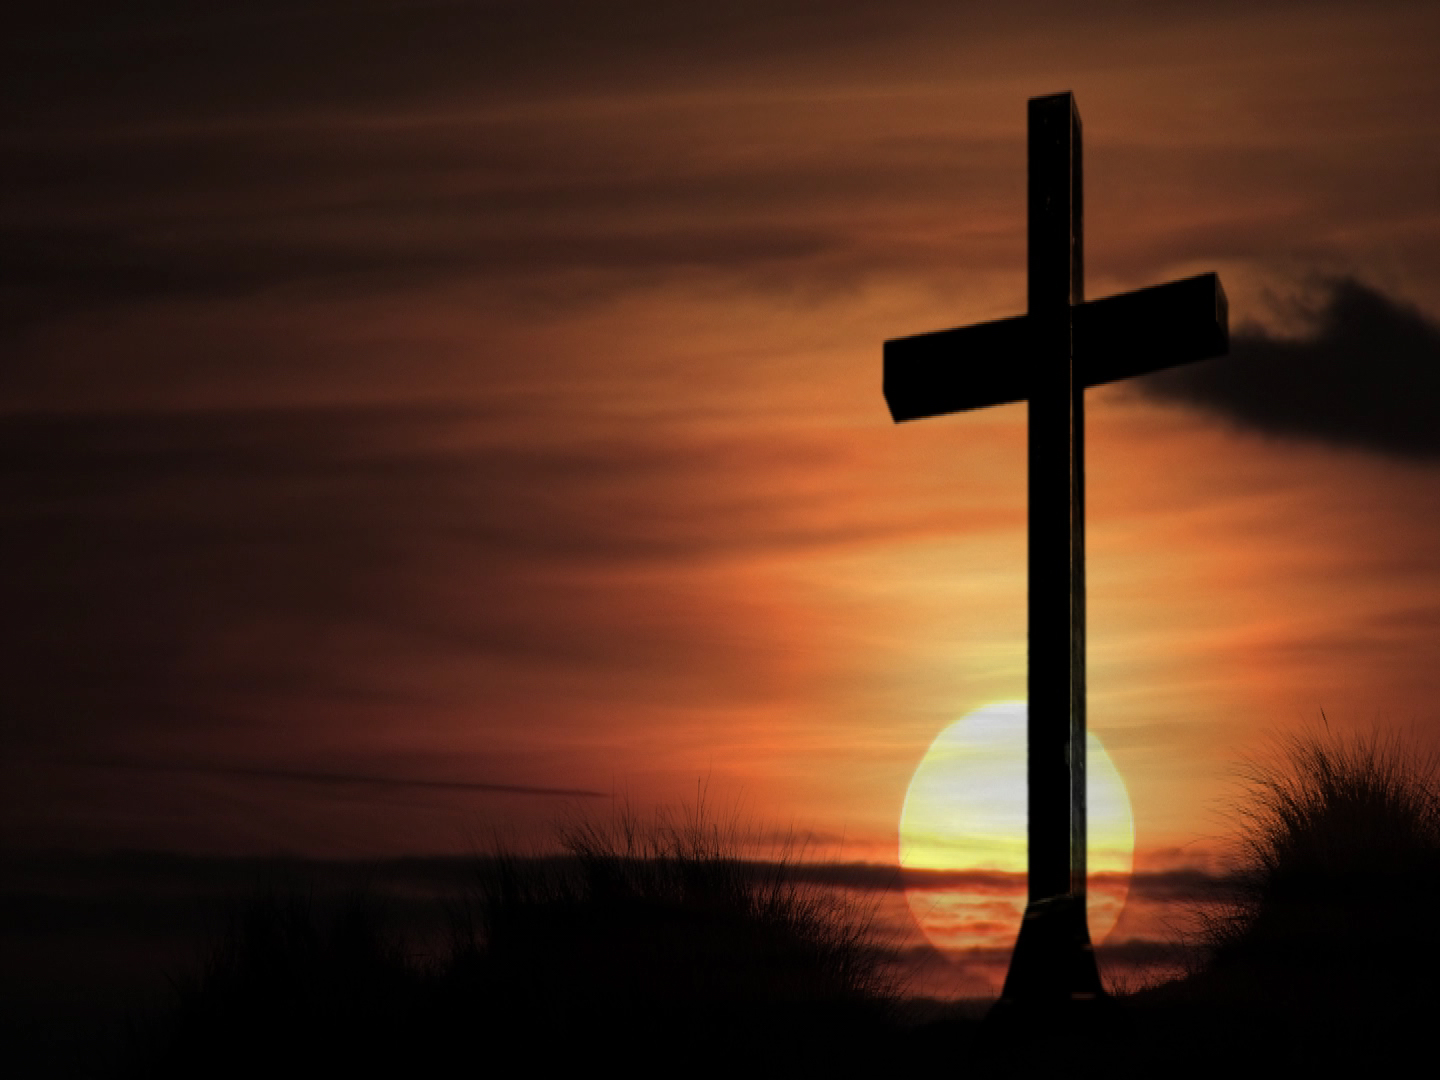 Christian photography cross on sunset papel de parede imagem